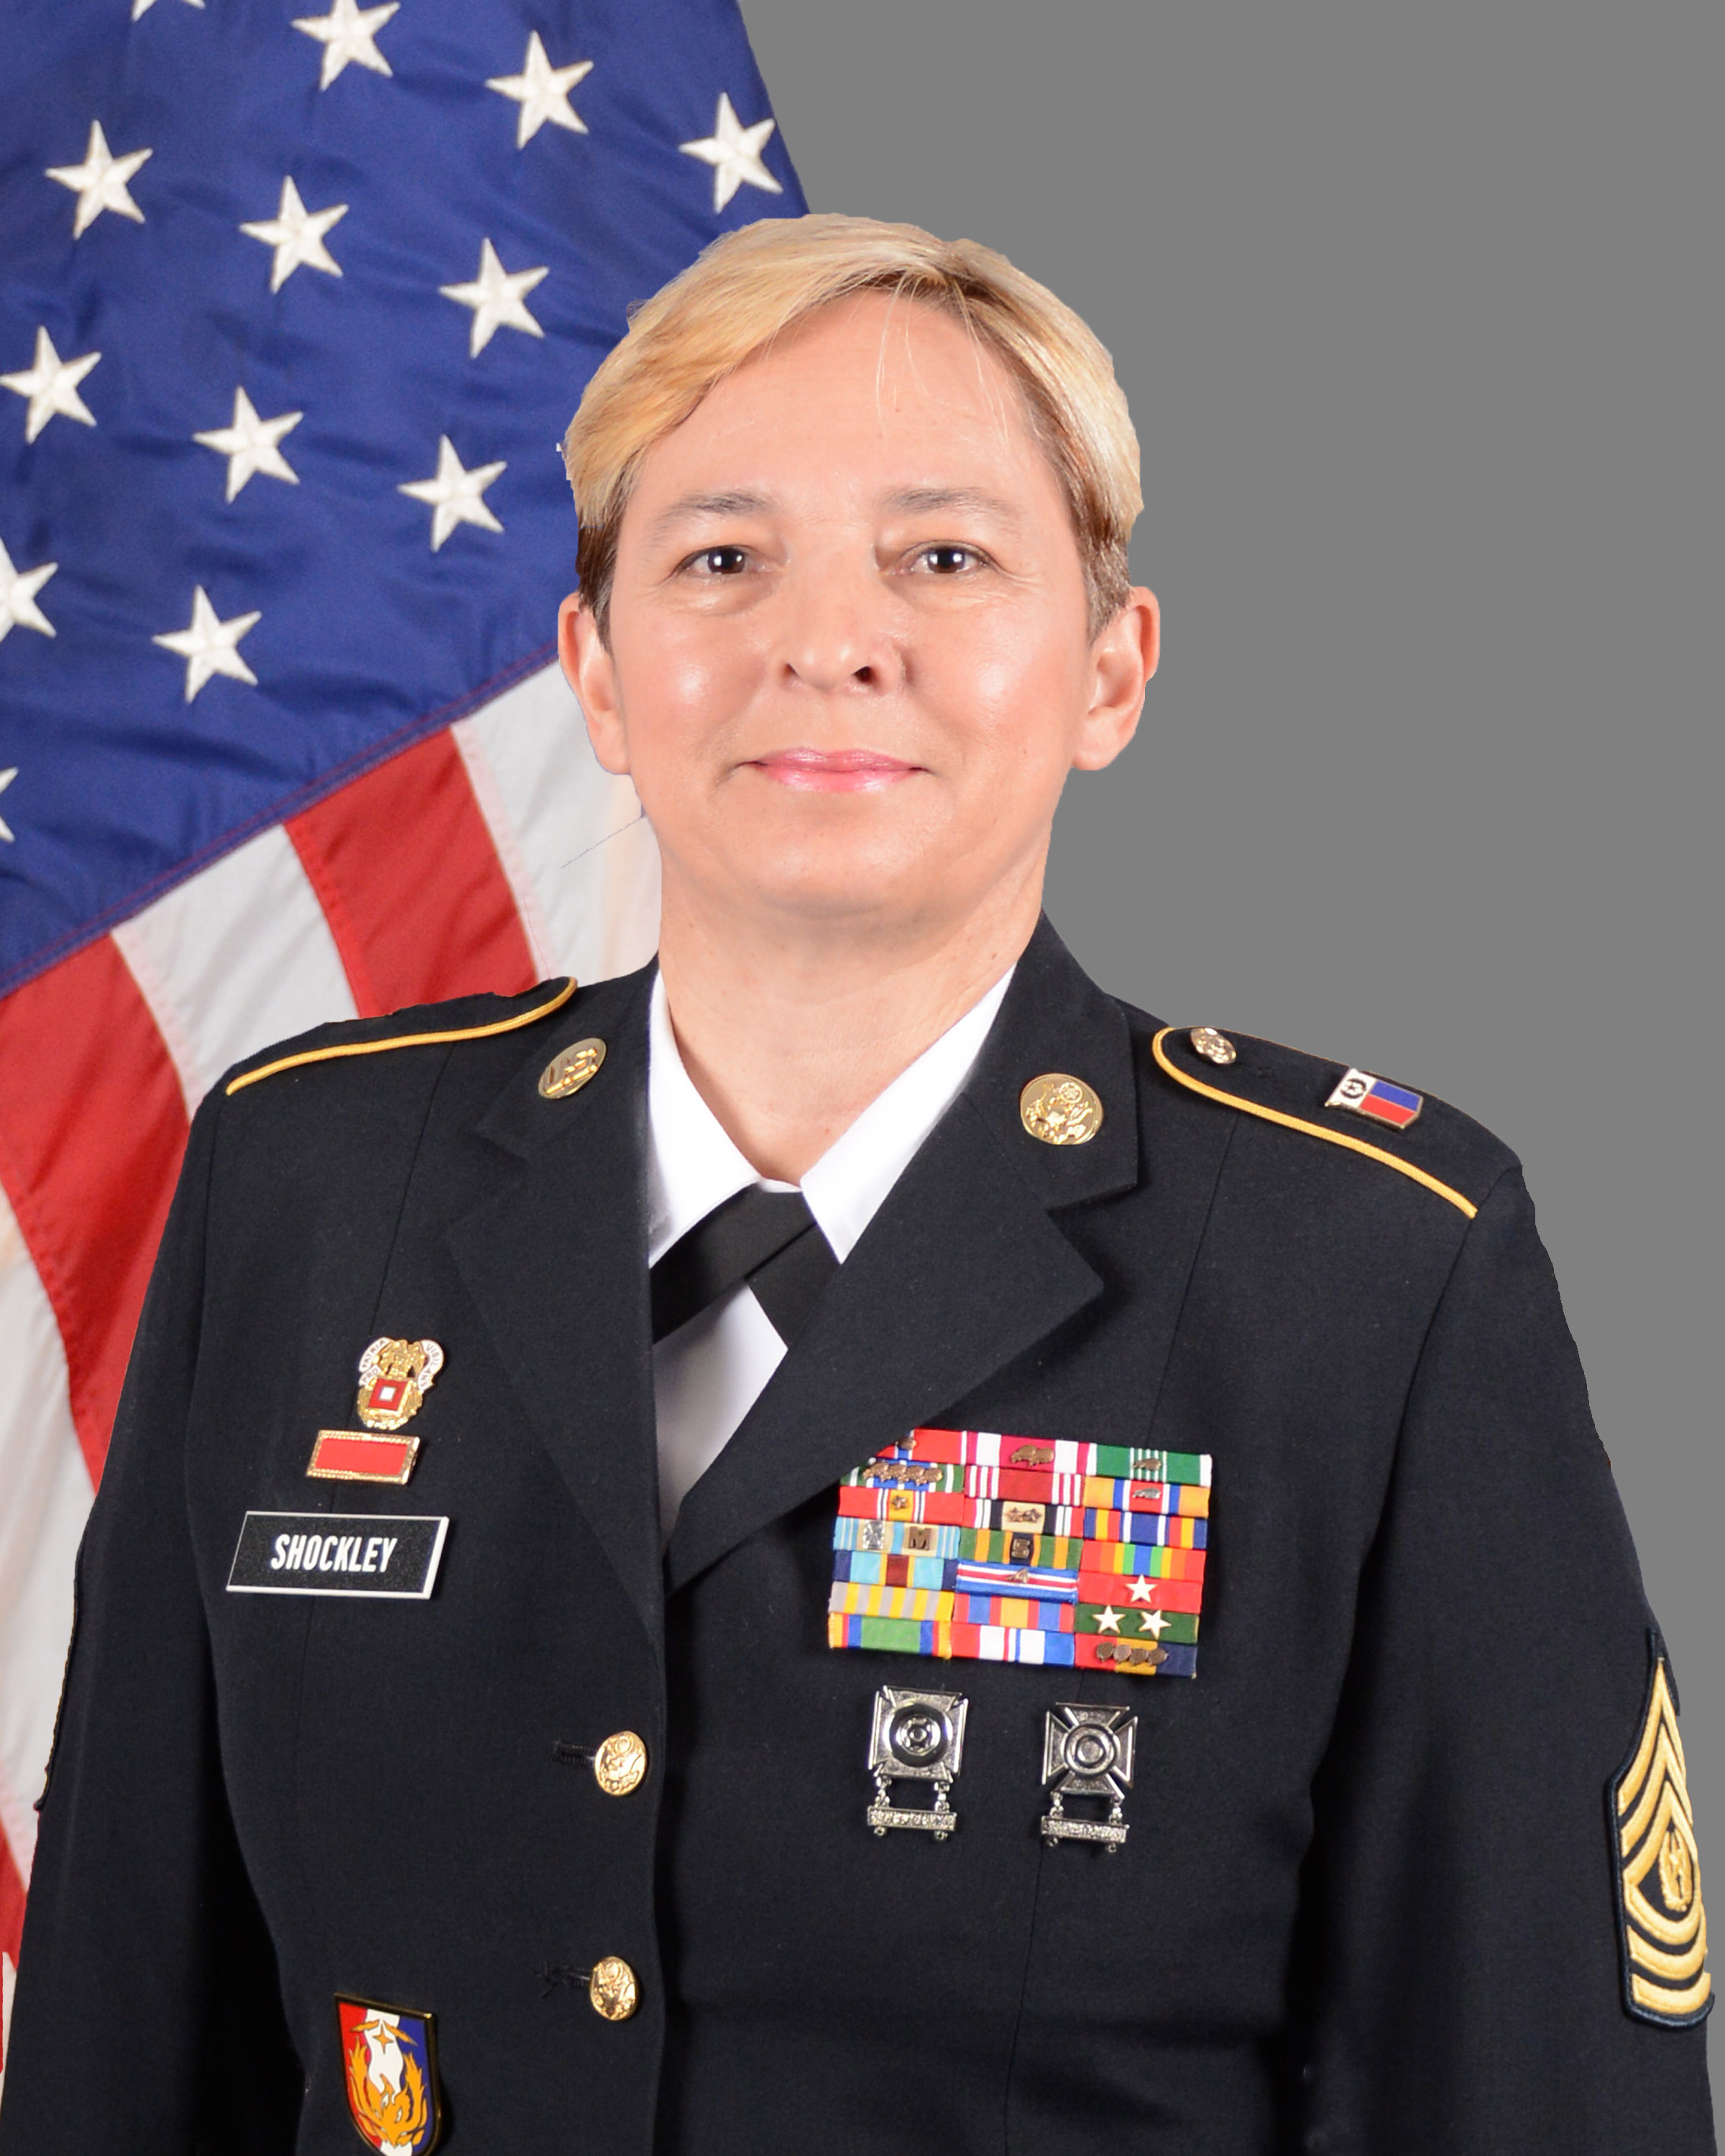 Command Sgt. Maj. Elizabeth Shockley SENIOR ENLISTED ADVISOR DOMESTIC OPERATIONS